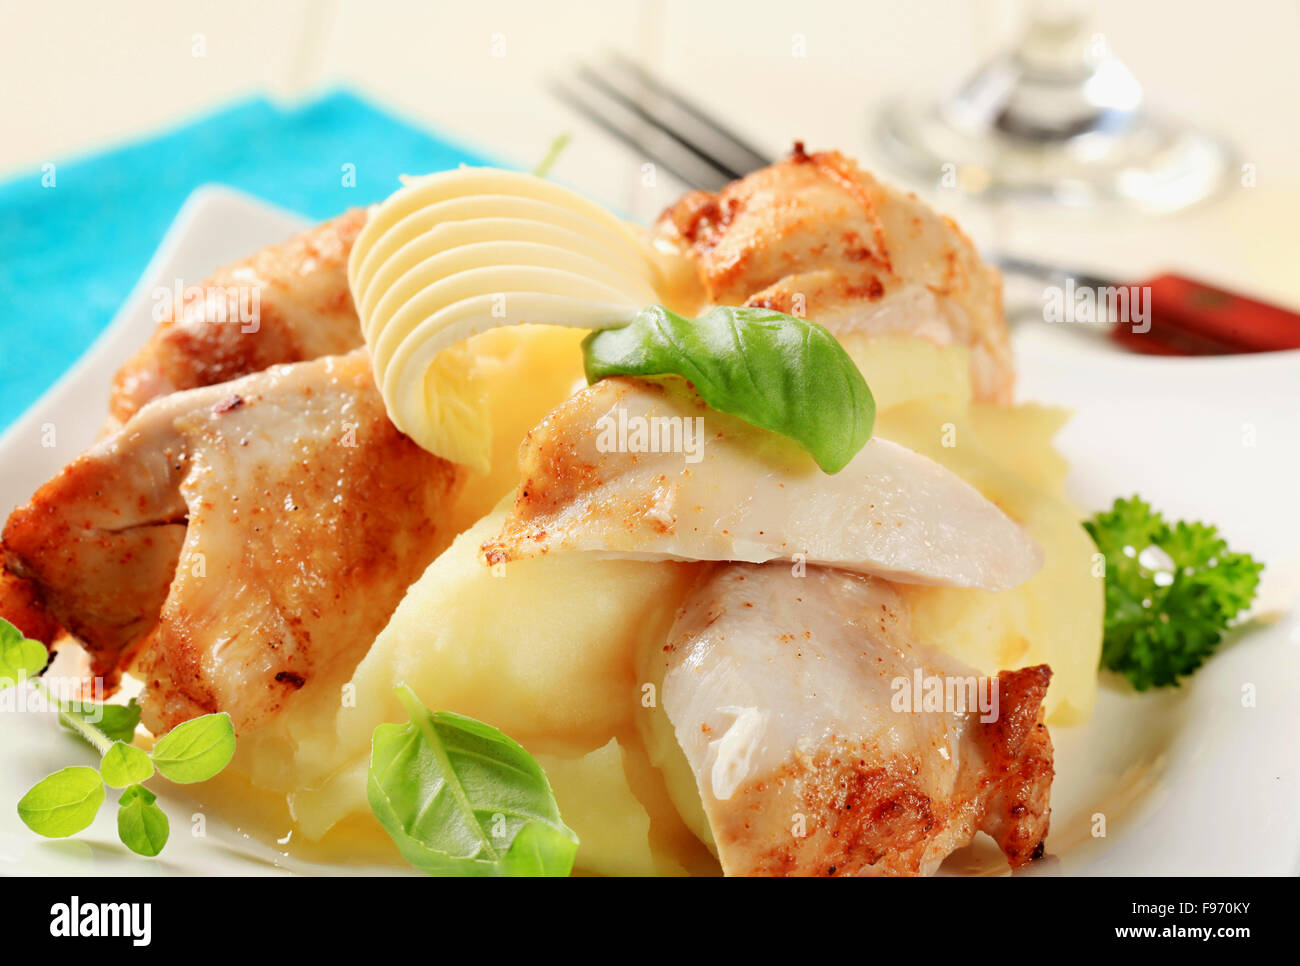 Pieces of roast chicken with mashed potato - Stock Image